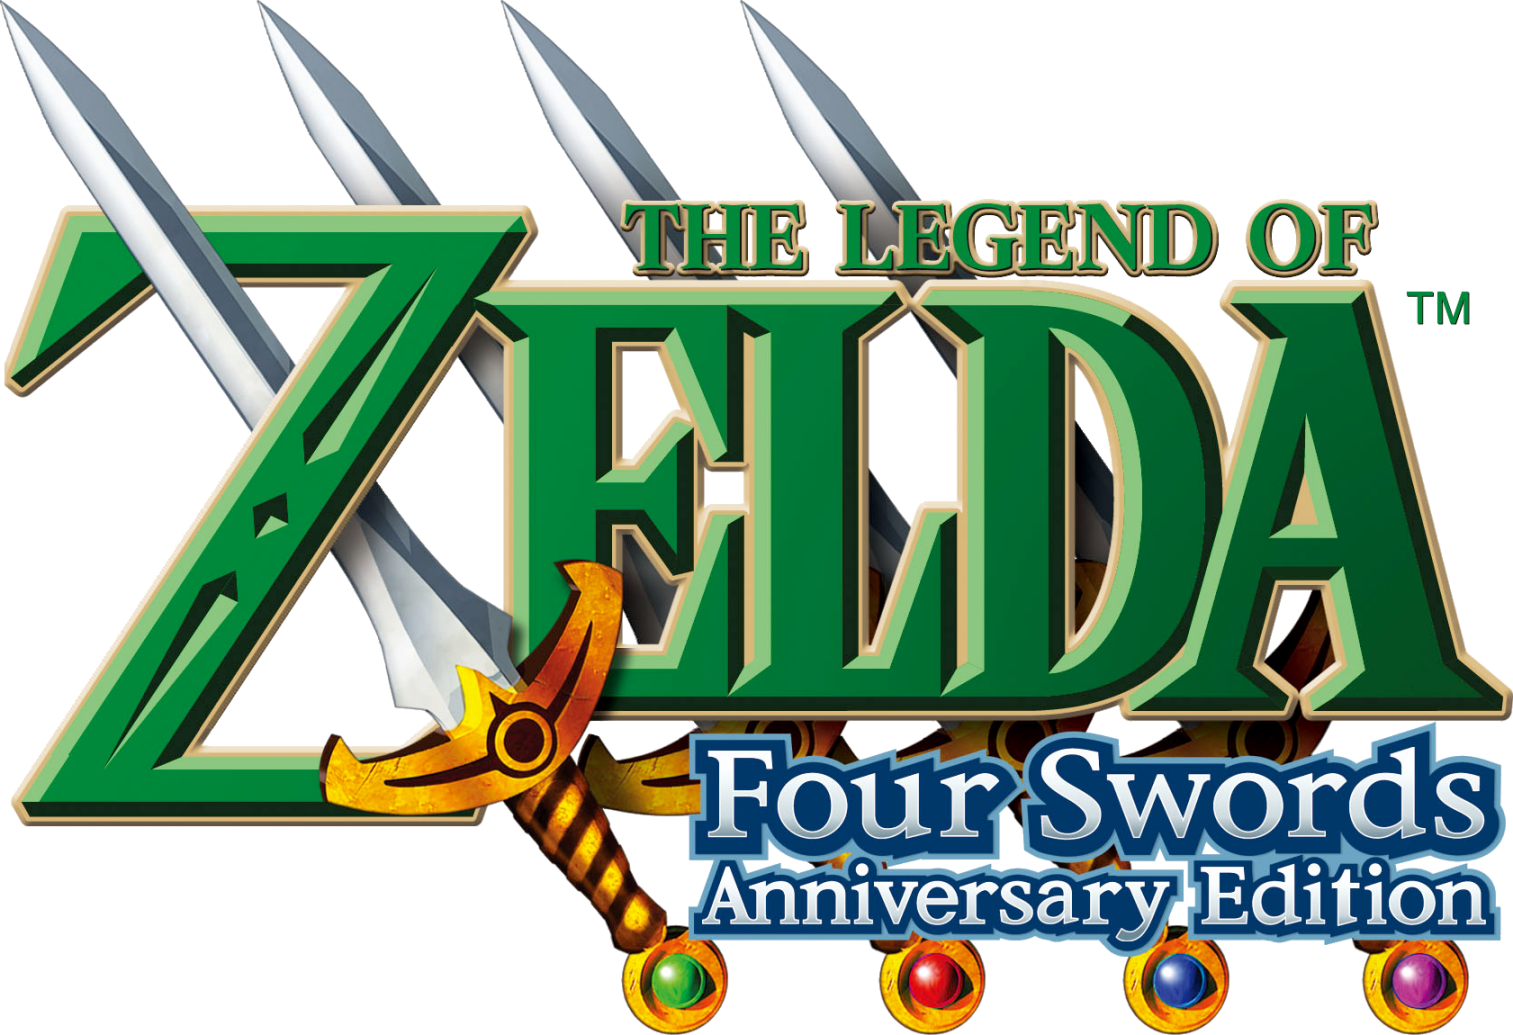 Image Credit: http://zelda.wikia.com/wiki/The_Legend_of_Zelda:_Four_Swords